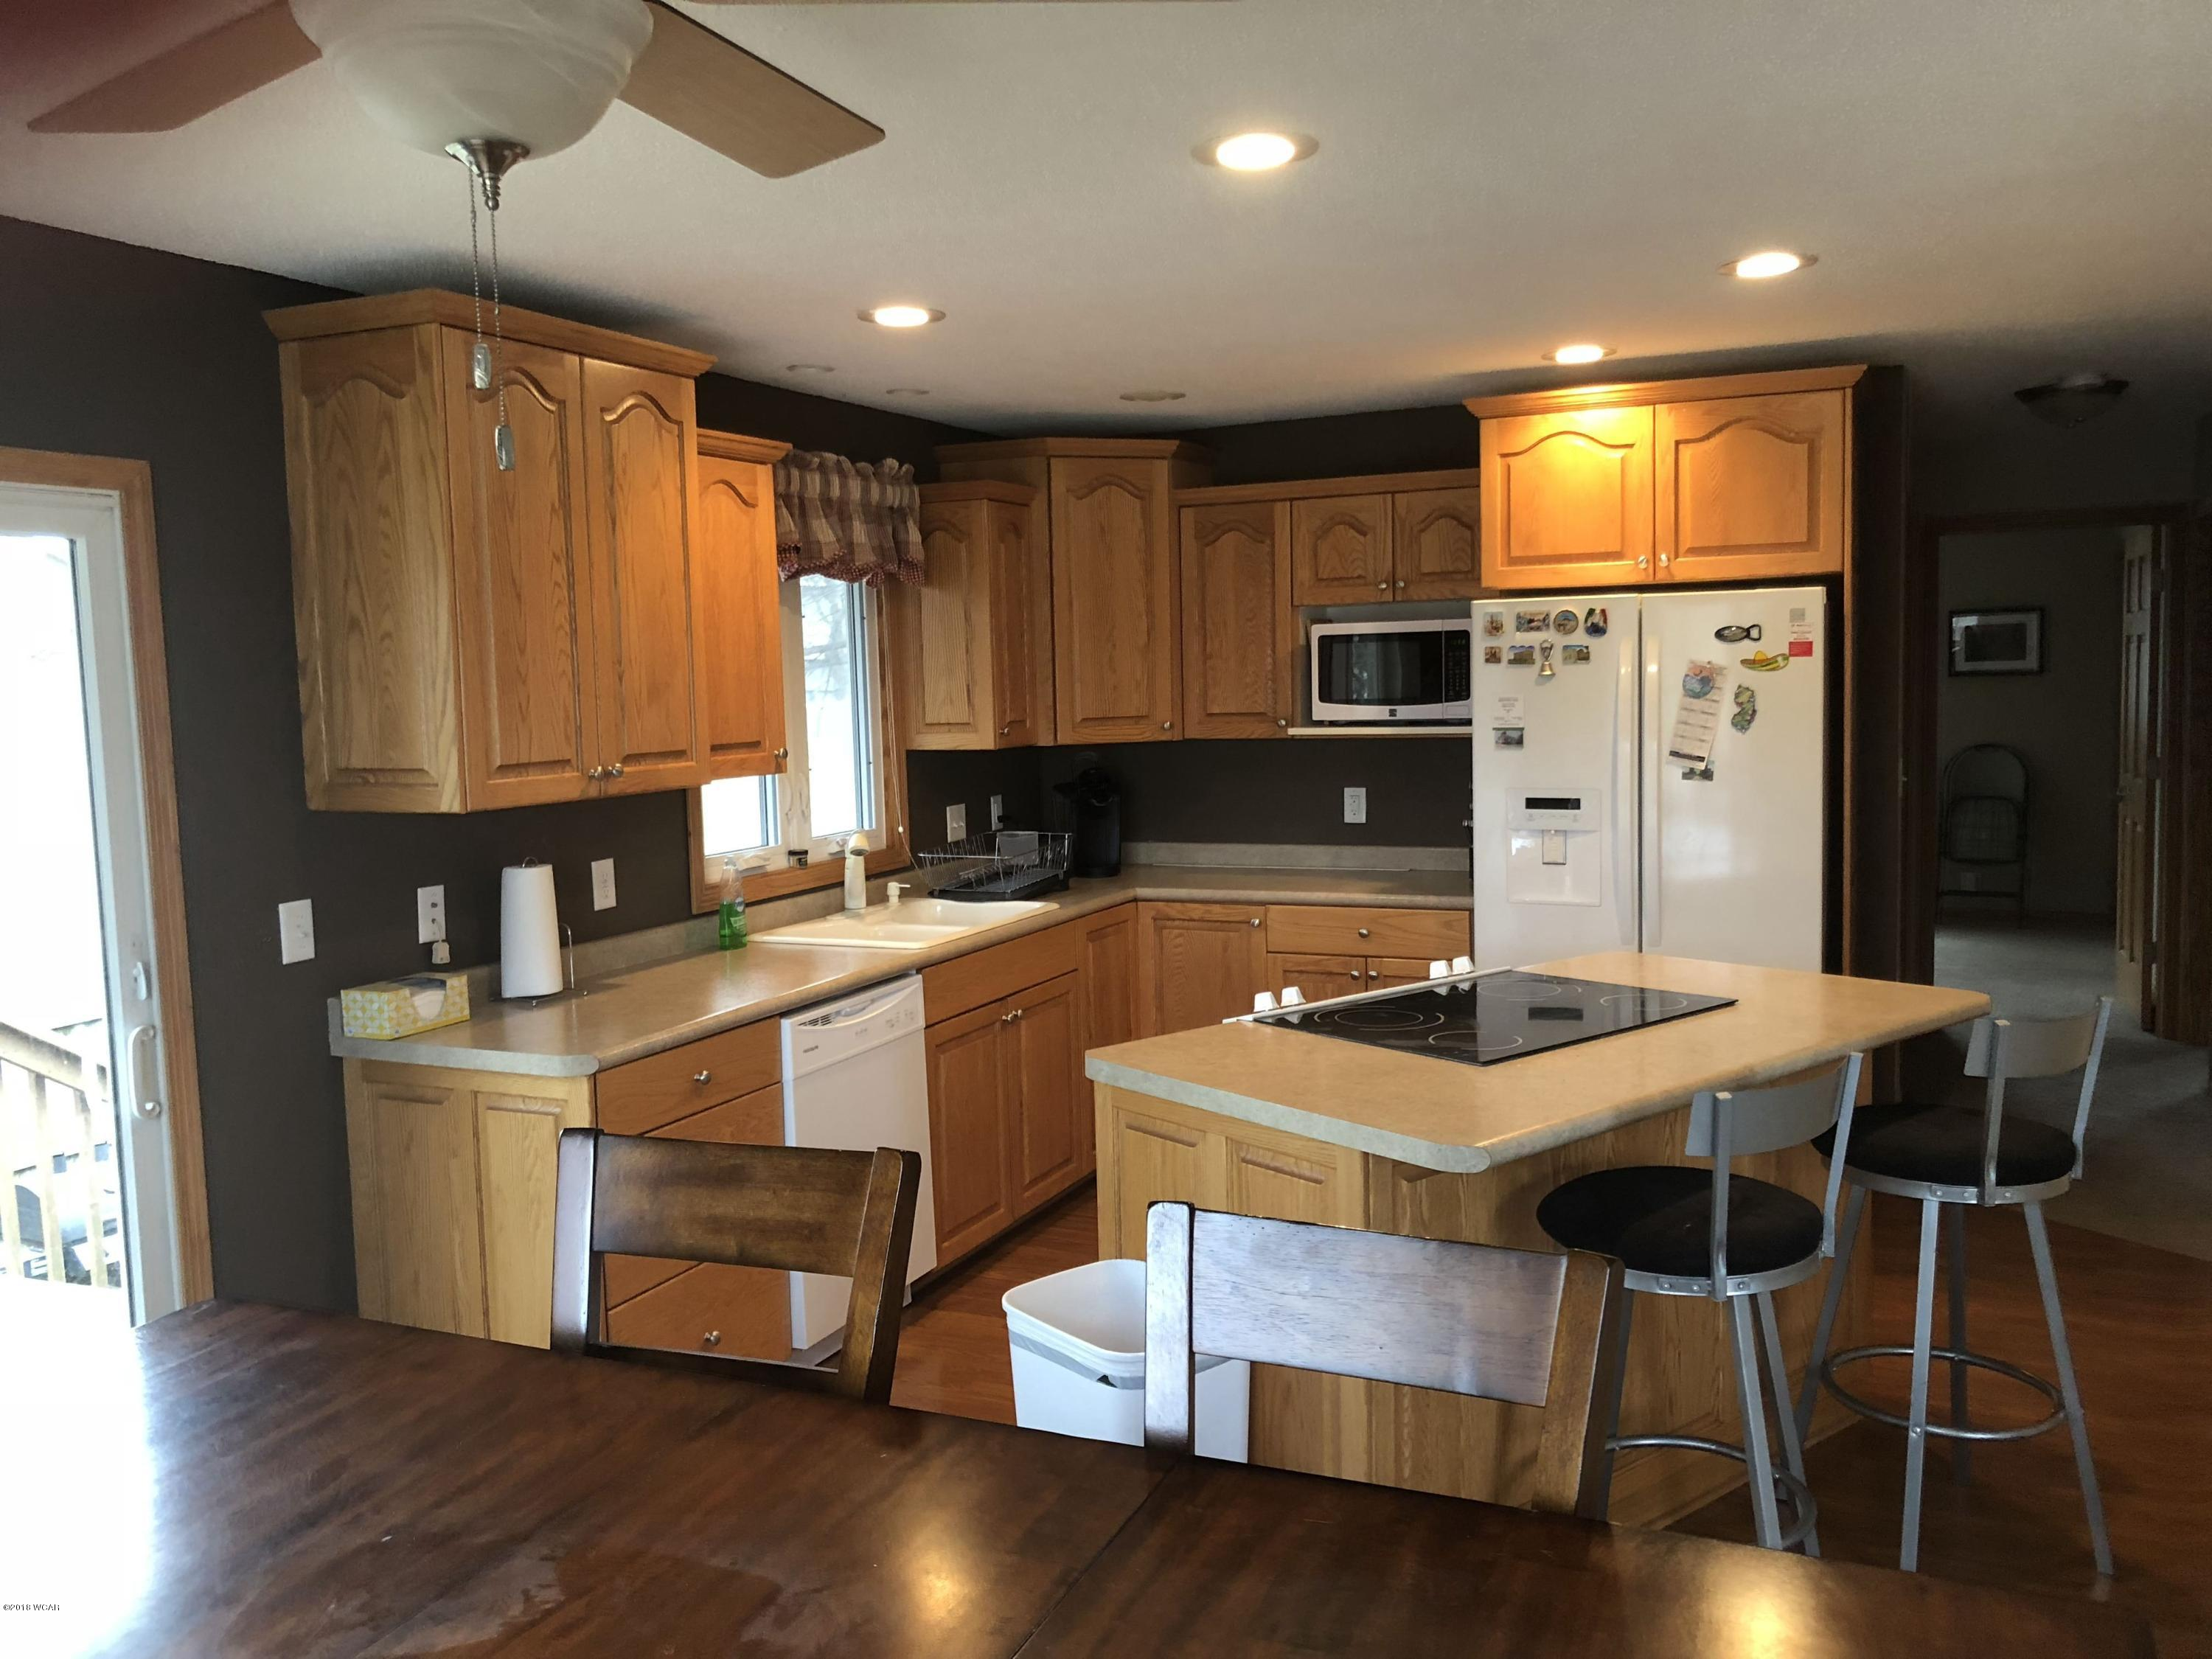 608 Lincoln Street,Atwater,4 Bedrooms Bedrooms,2 BathroomsBathrooms,Single Family,Lincoln Street,6032851